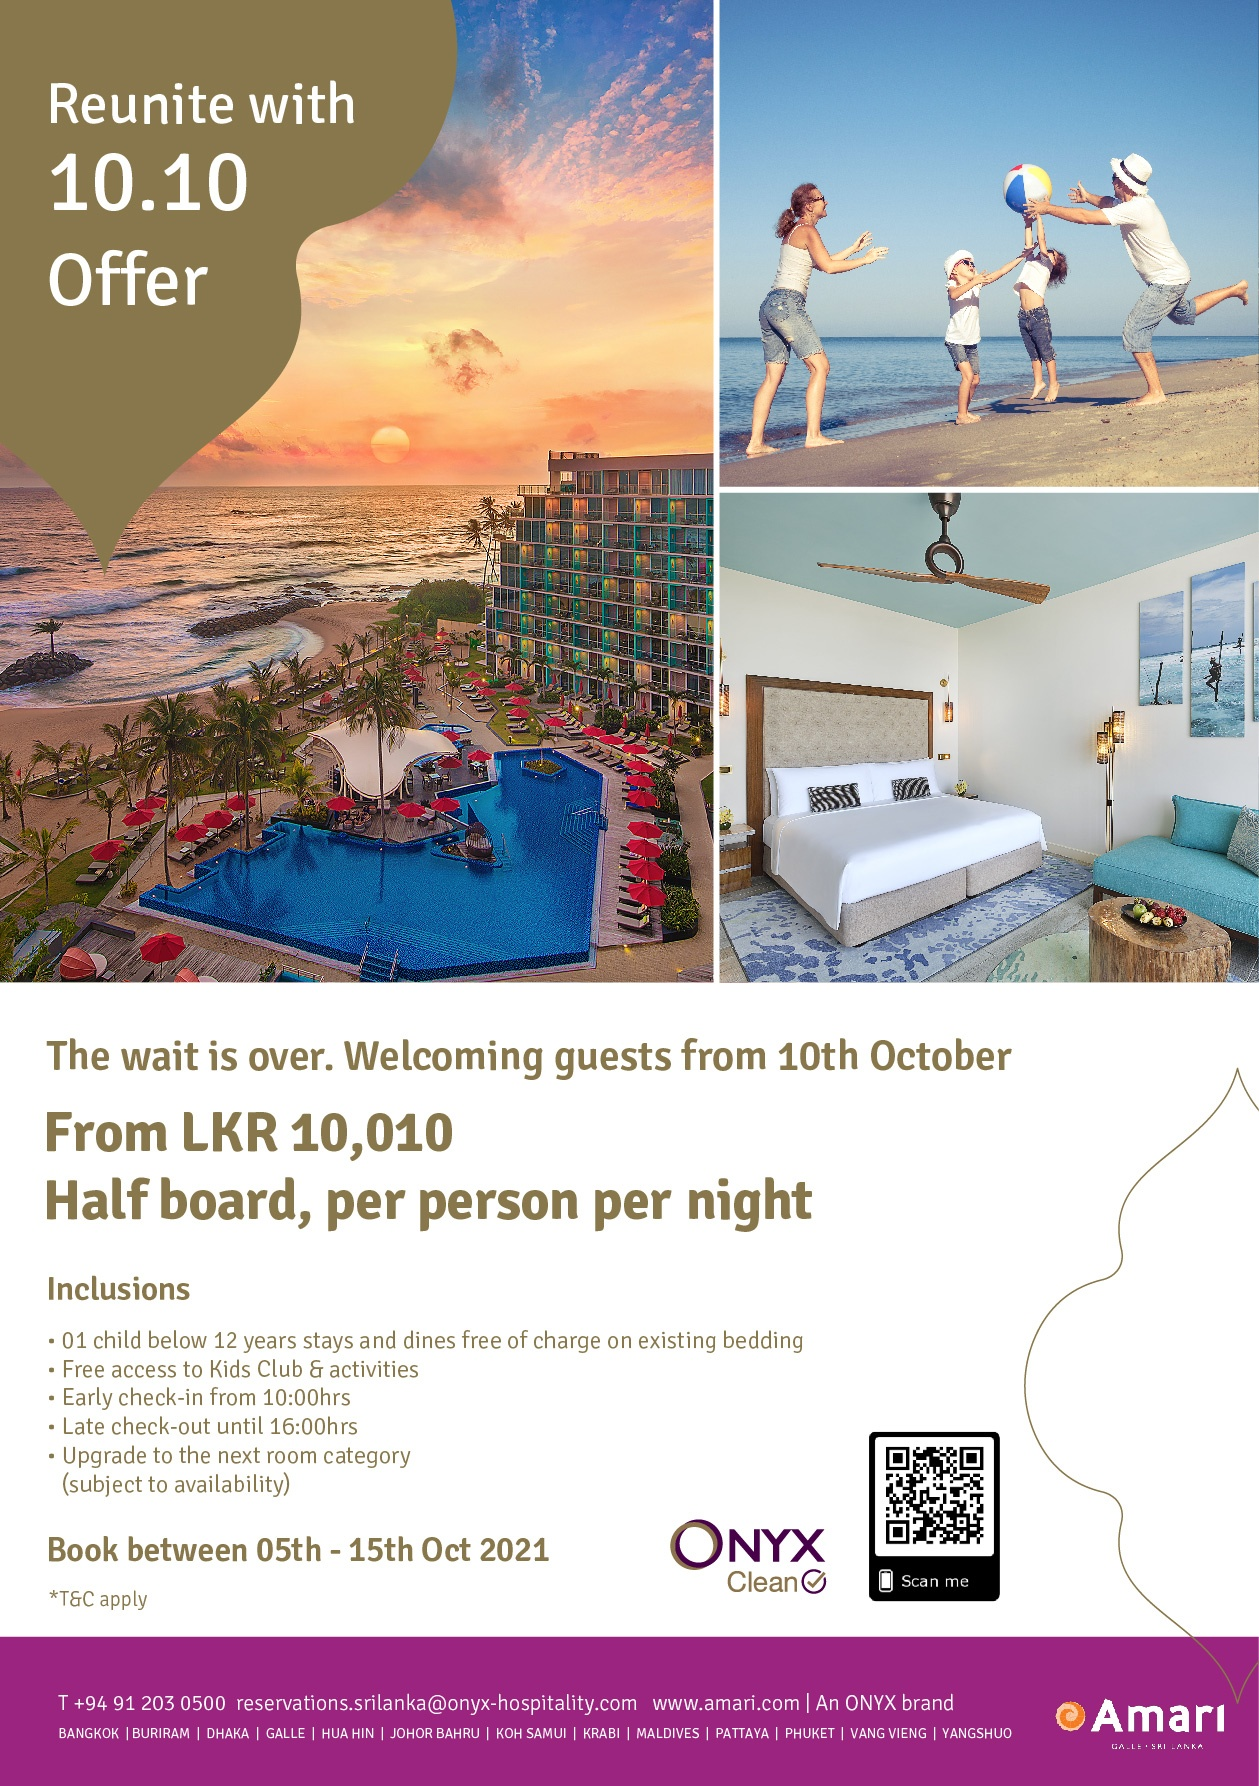 Reunite with 10.10 offer at Amari Galle